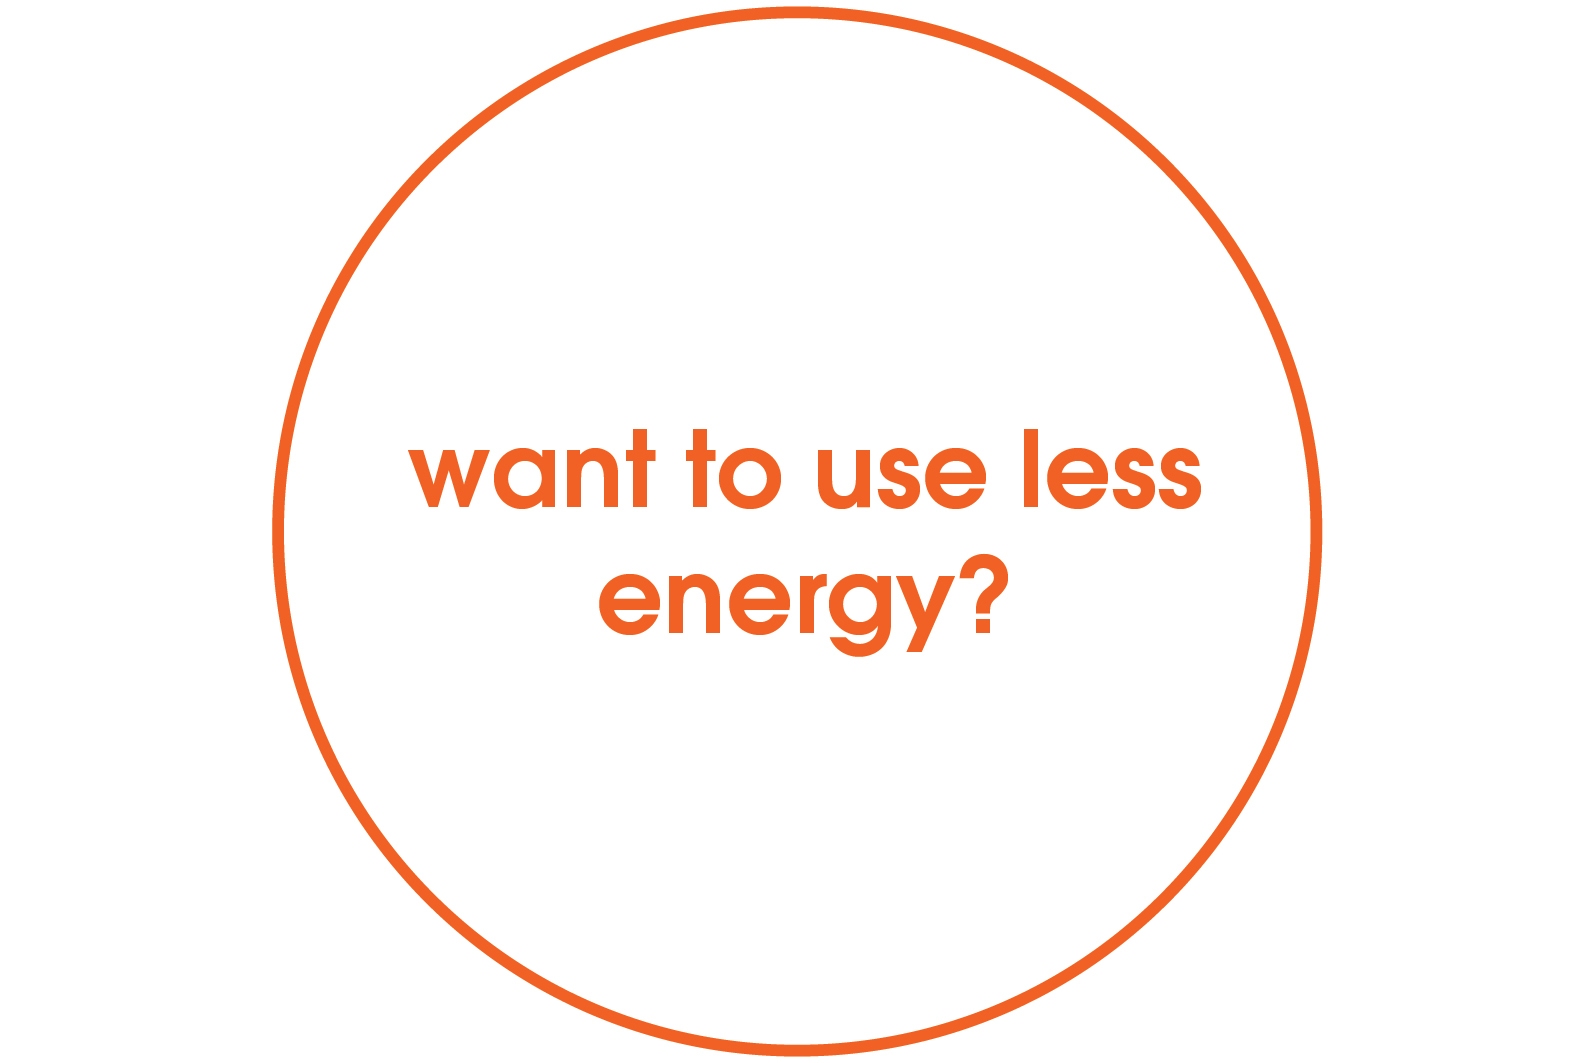 want to use less energy